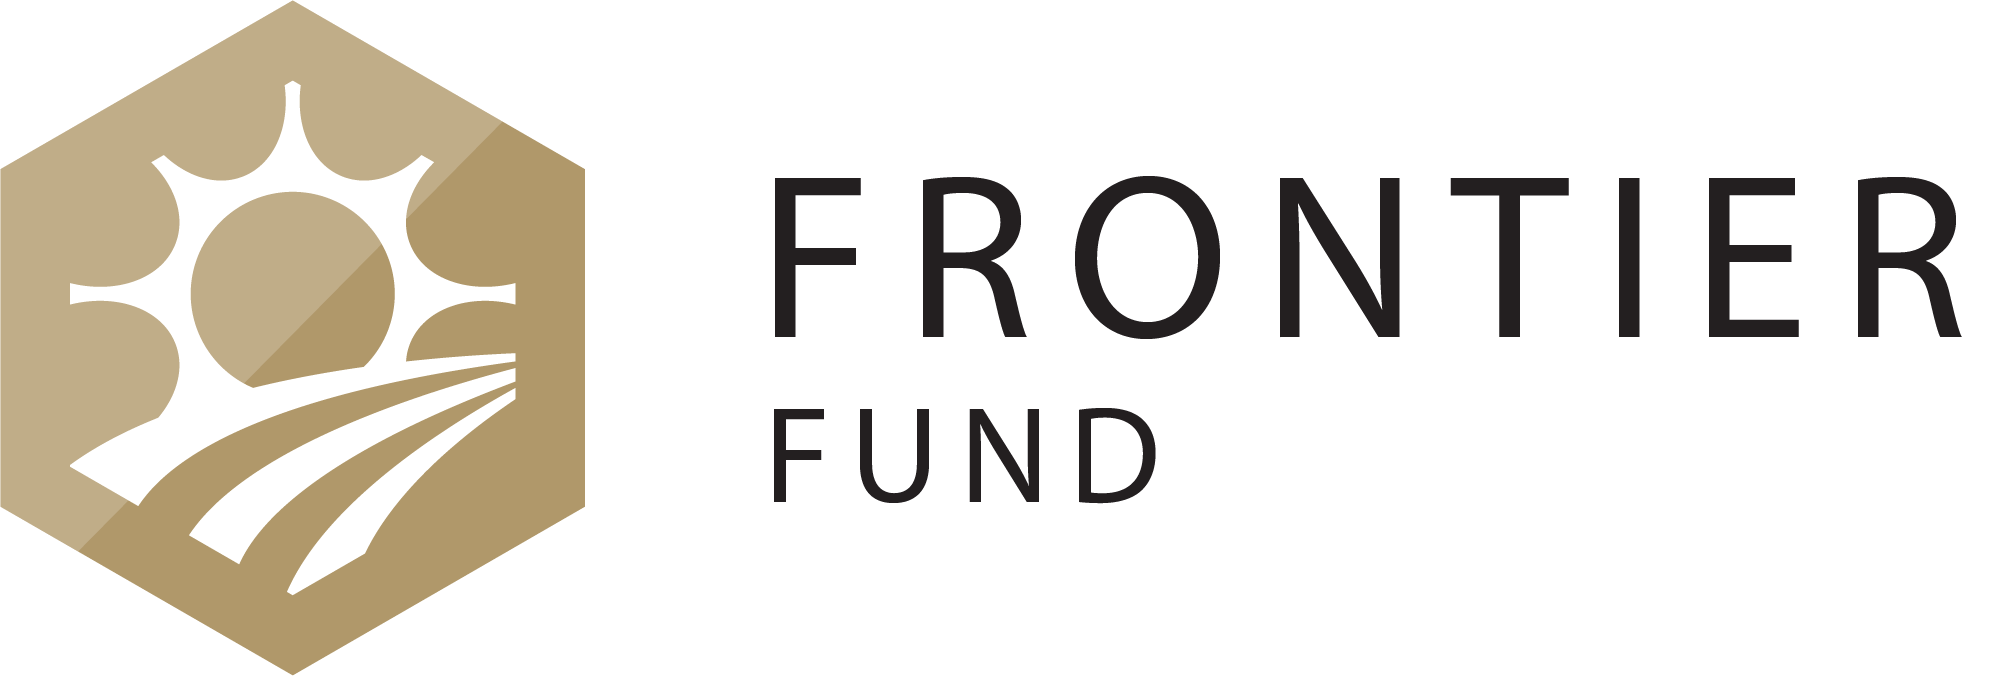 Design a shiny new logo for our new Frontier Fund!